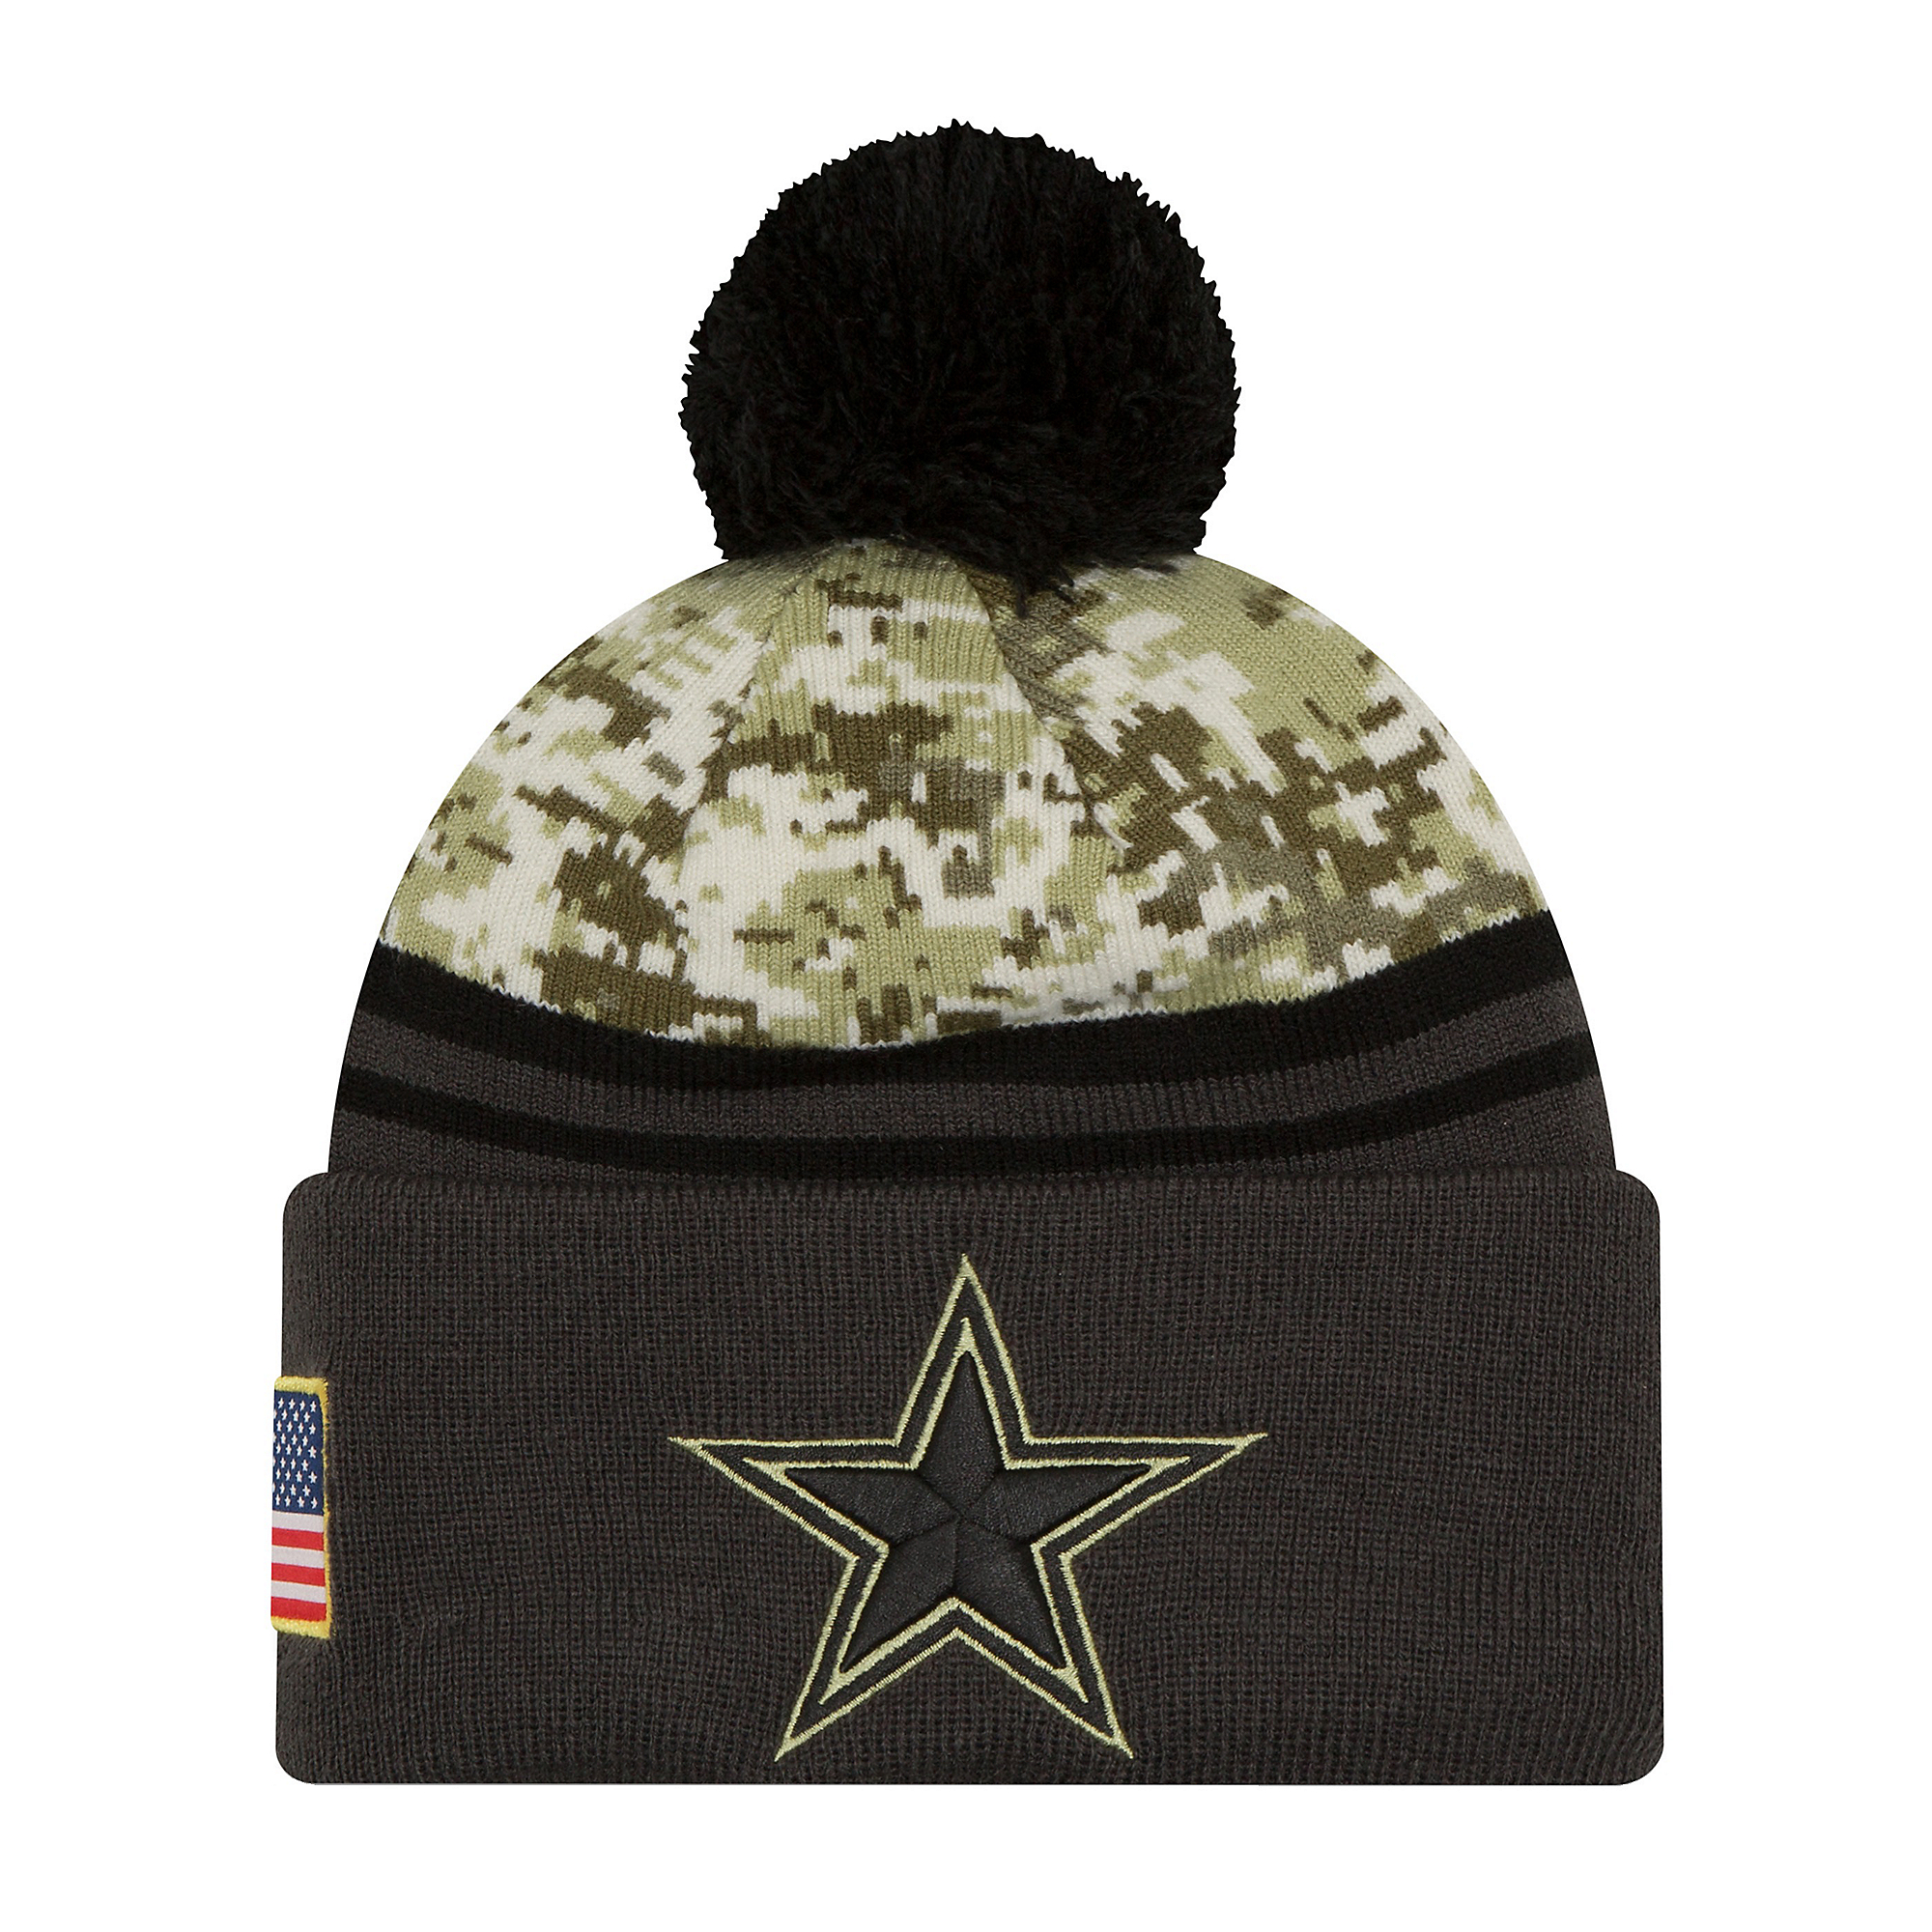 Dallas Cowboys New Era Salute to Service Sport Knit Hat  103dca9a1249